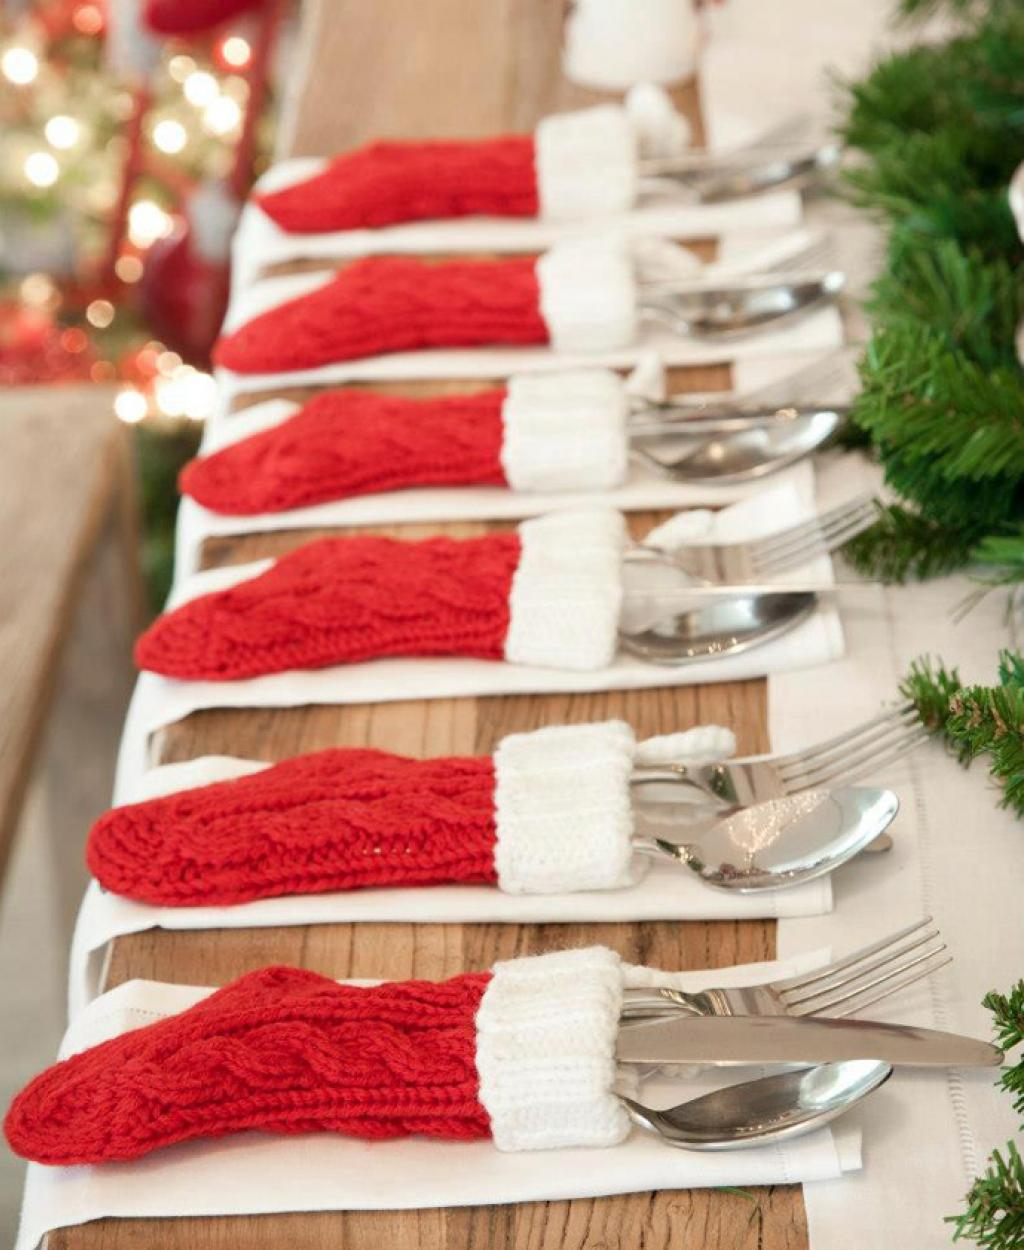 Easy Christmas Decor: Red Stocking Silverware Holders